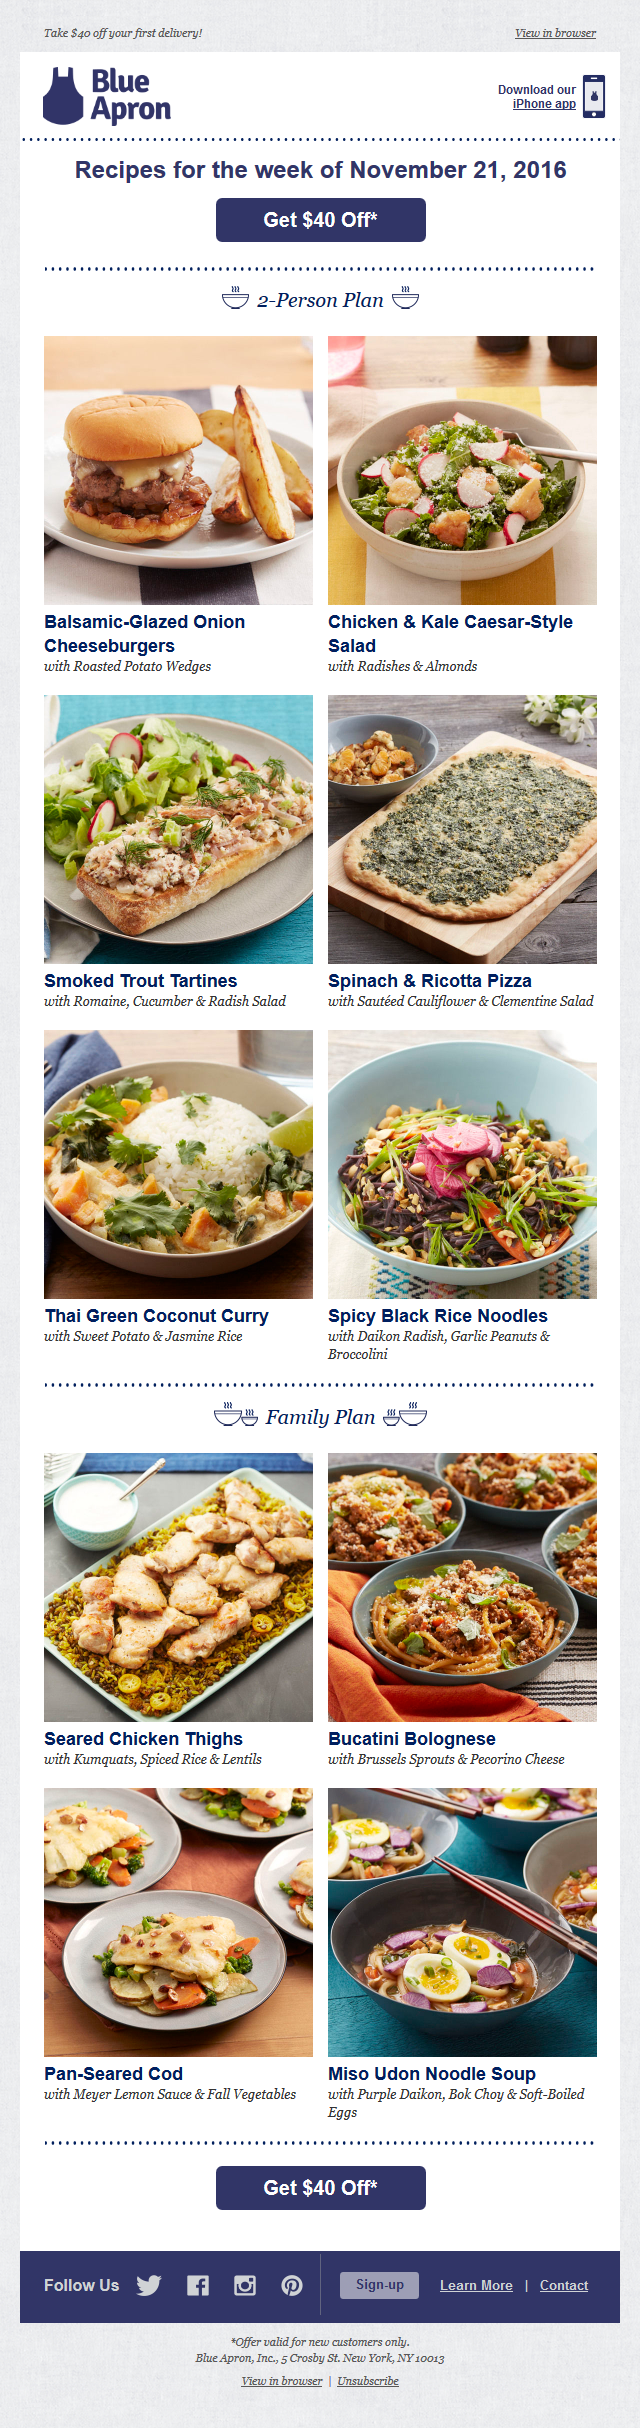 Blue Apron - $40 off + cheeseburgers = a mouthwatering deal for a mouthwatering mea